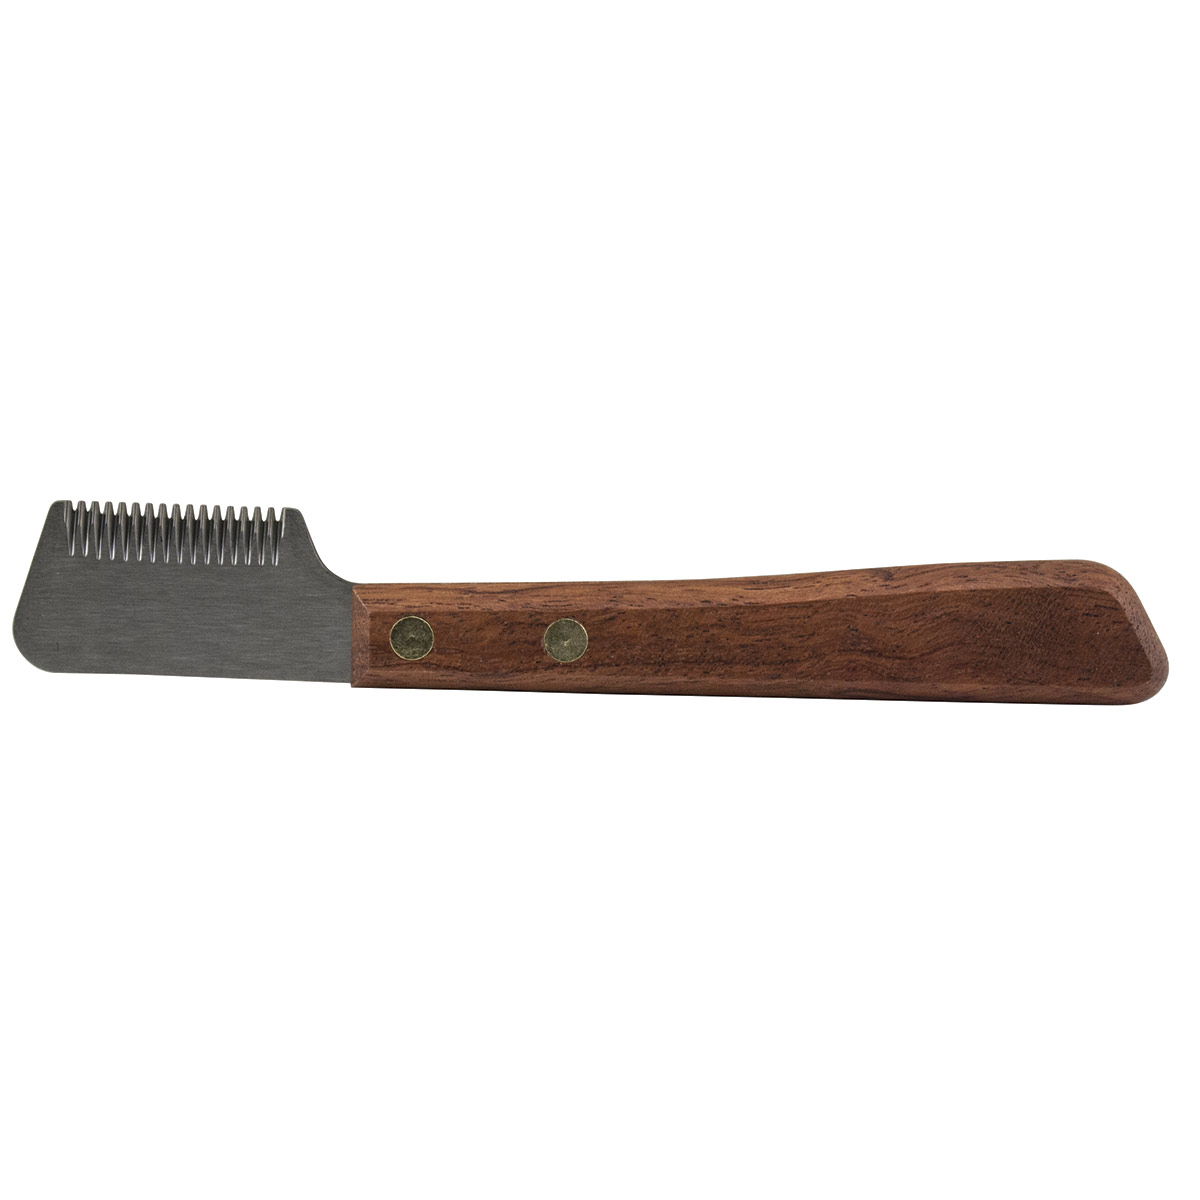 18 Tooth Lefty Coarse Stripper with Rose Wood Handle